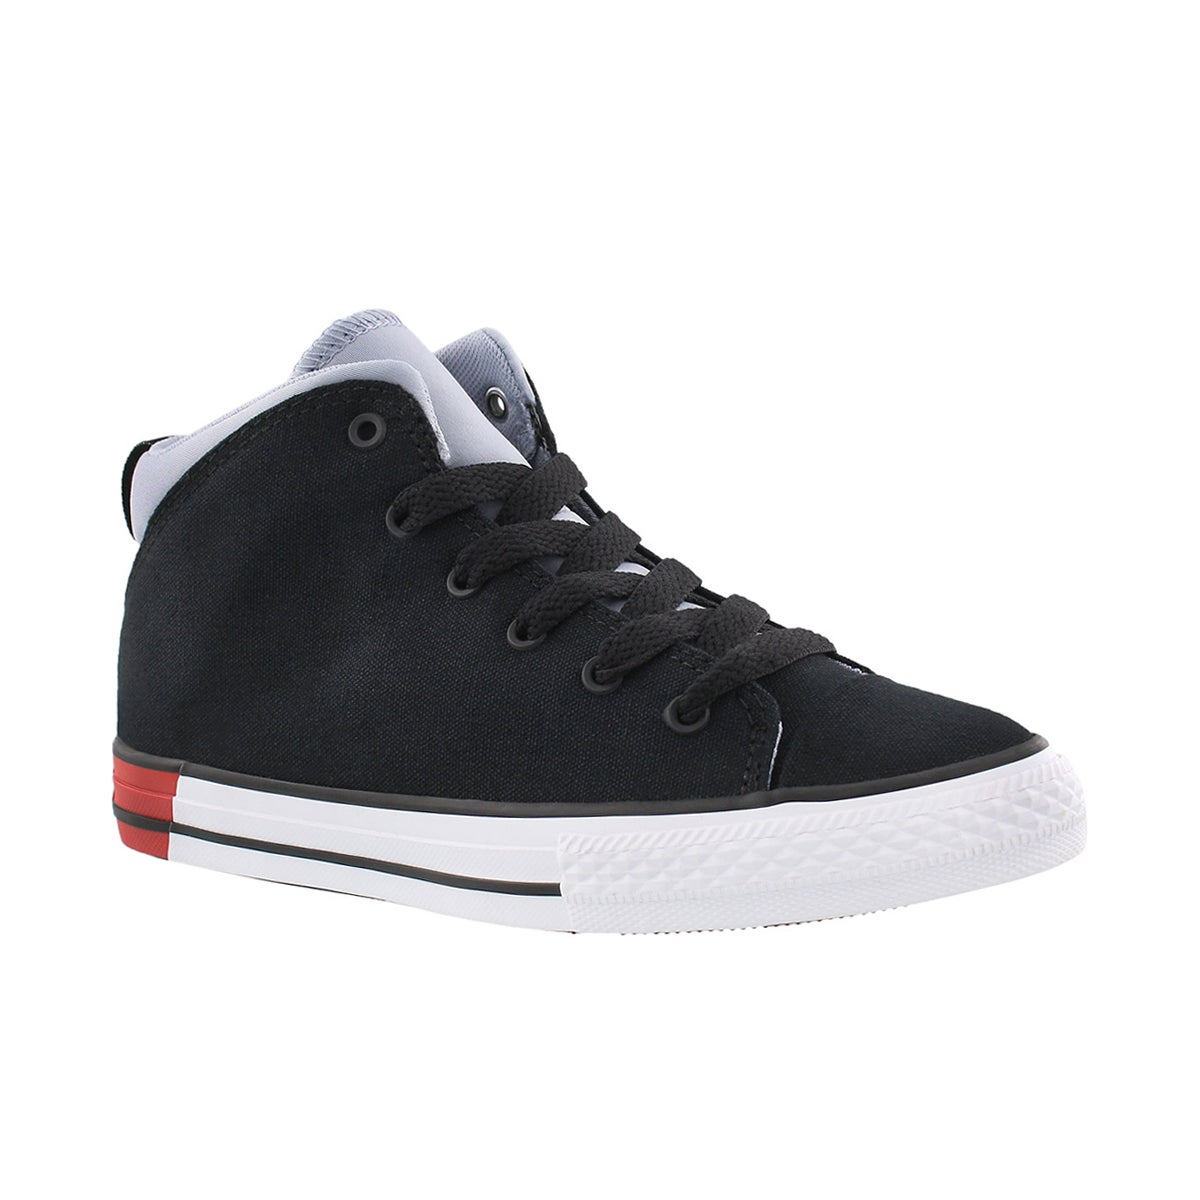 Boys' CT ALL STAR OFFICIAL blk/blu laceup sneakers